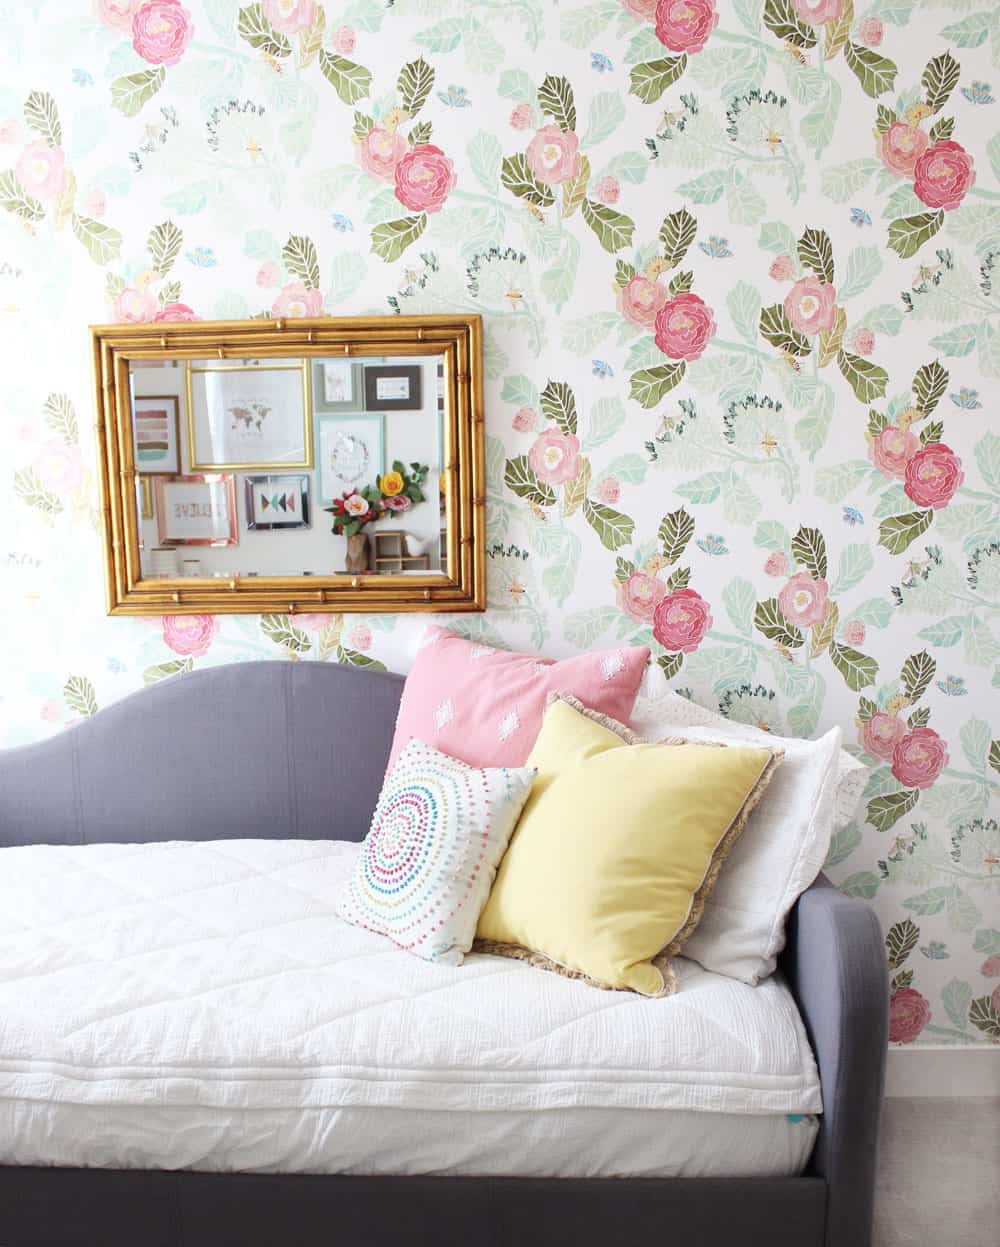 floral wallpaper with a gold mirror